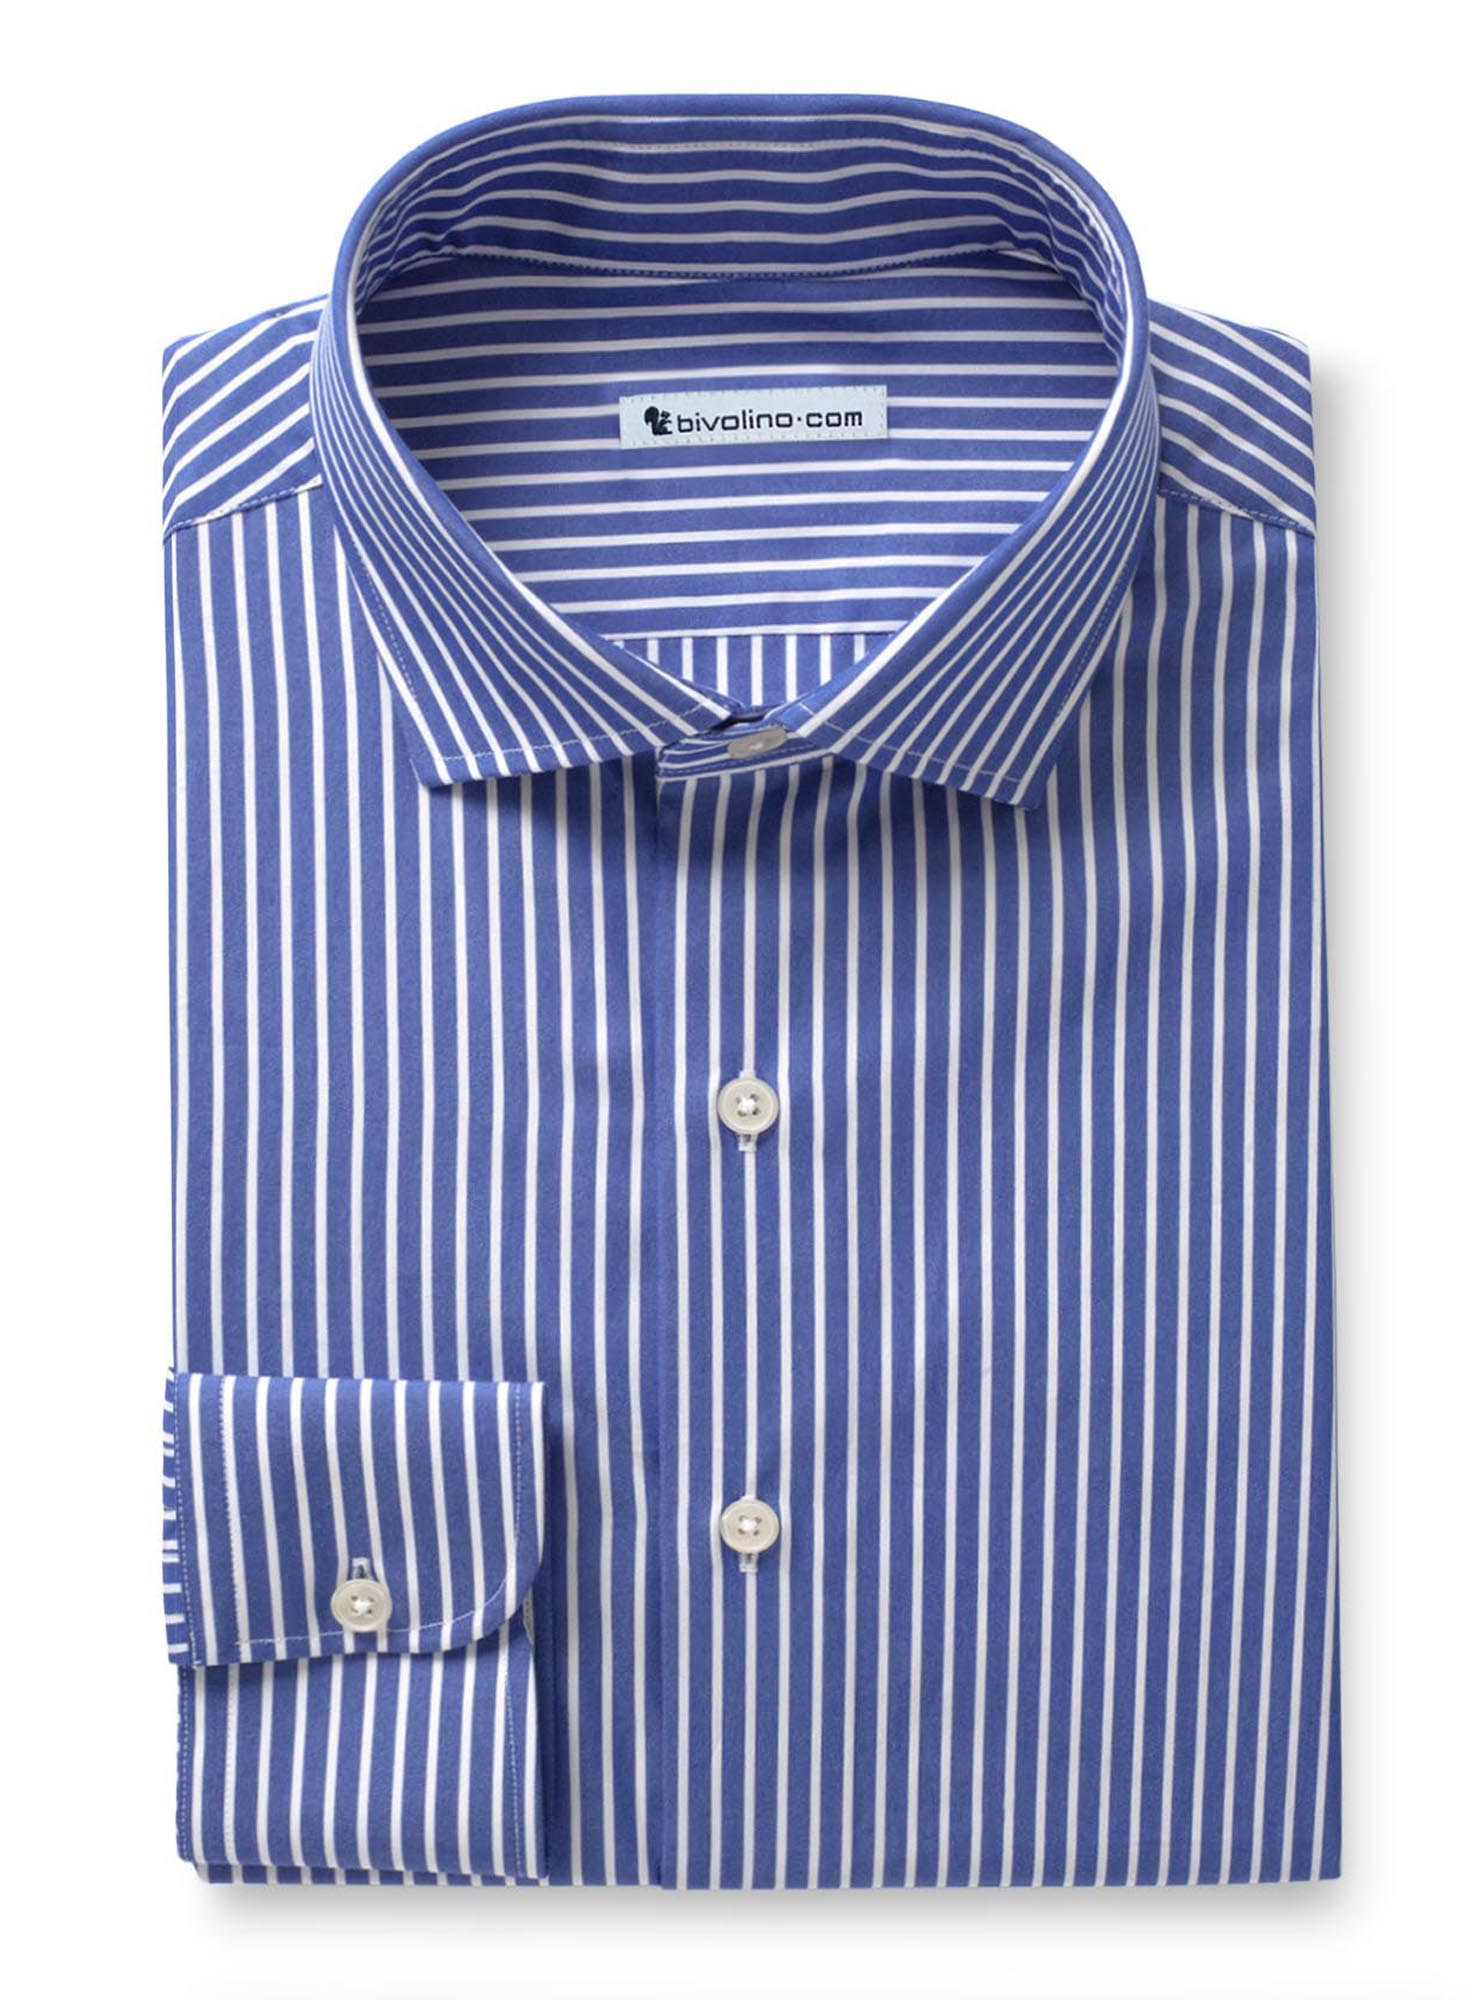 DIRIZIA - blue striped poplin shirt - TUFO 1